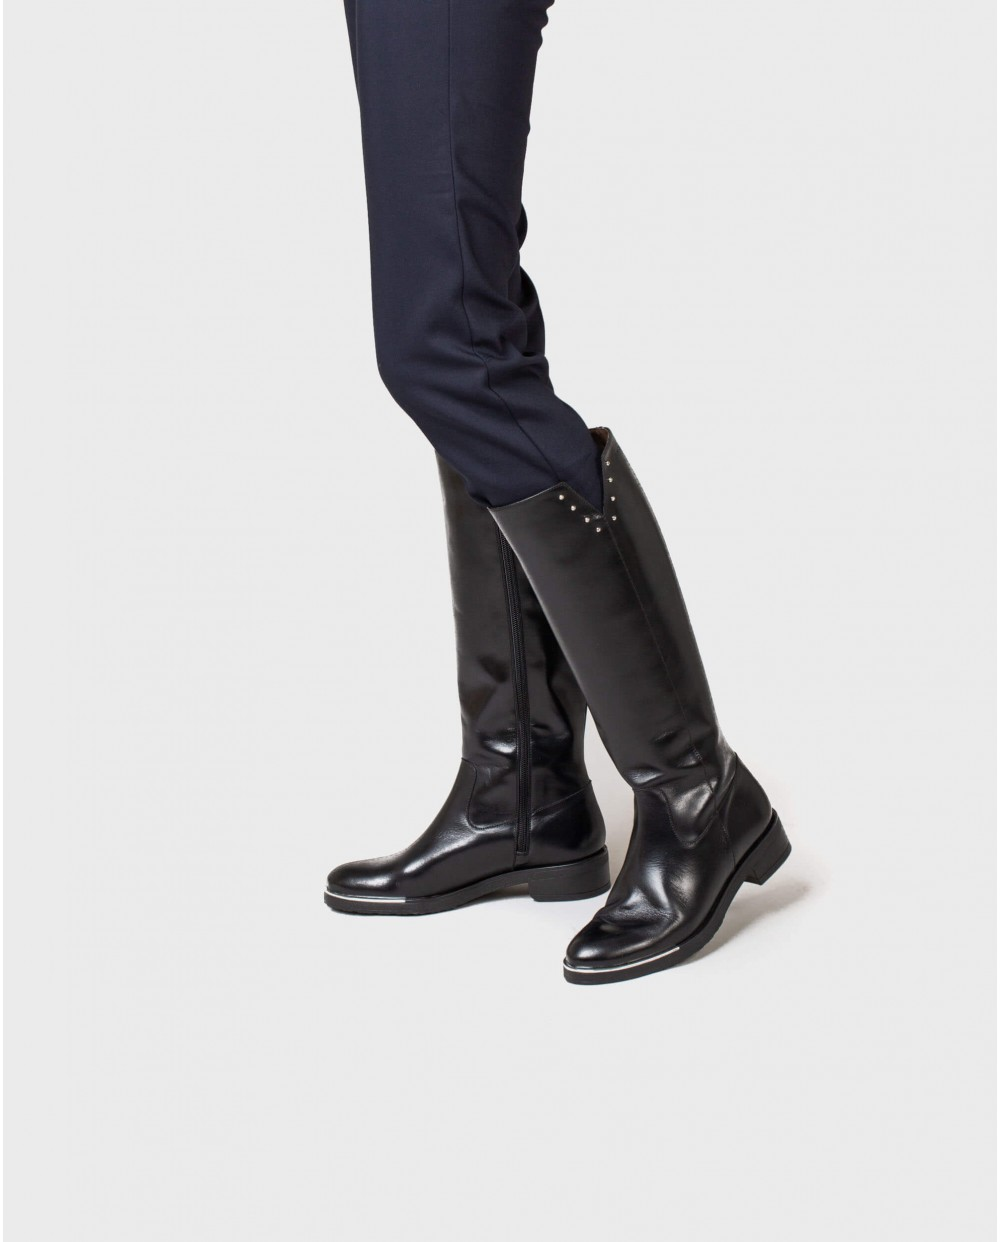 Wonders-Outlet Women-Leather boot with metallic detail